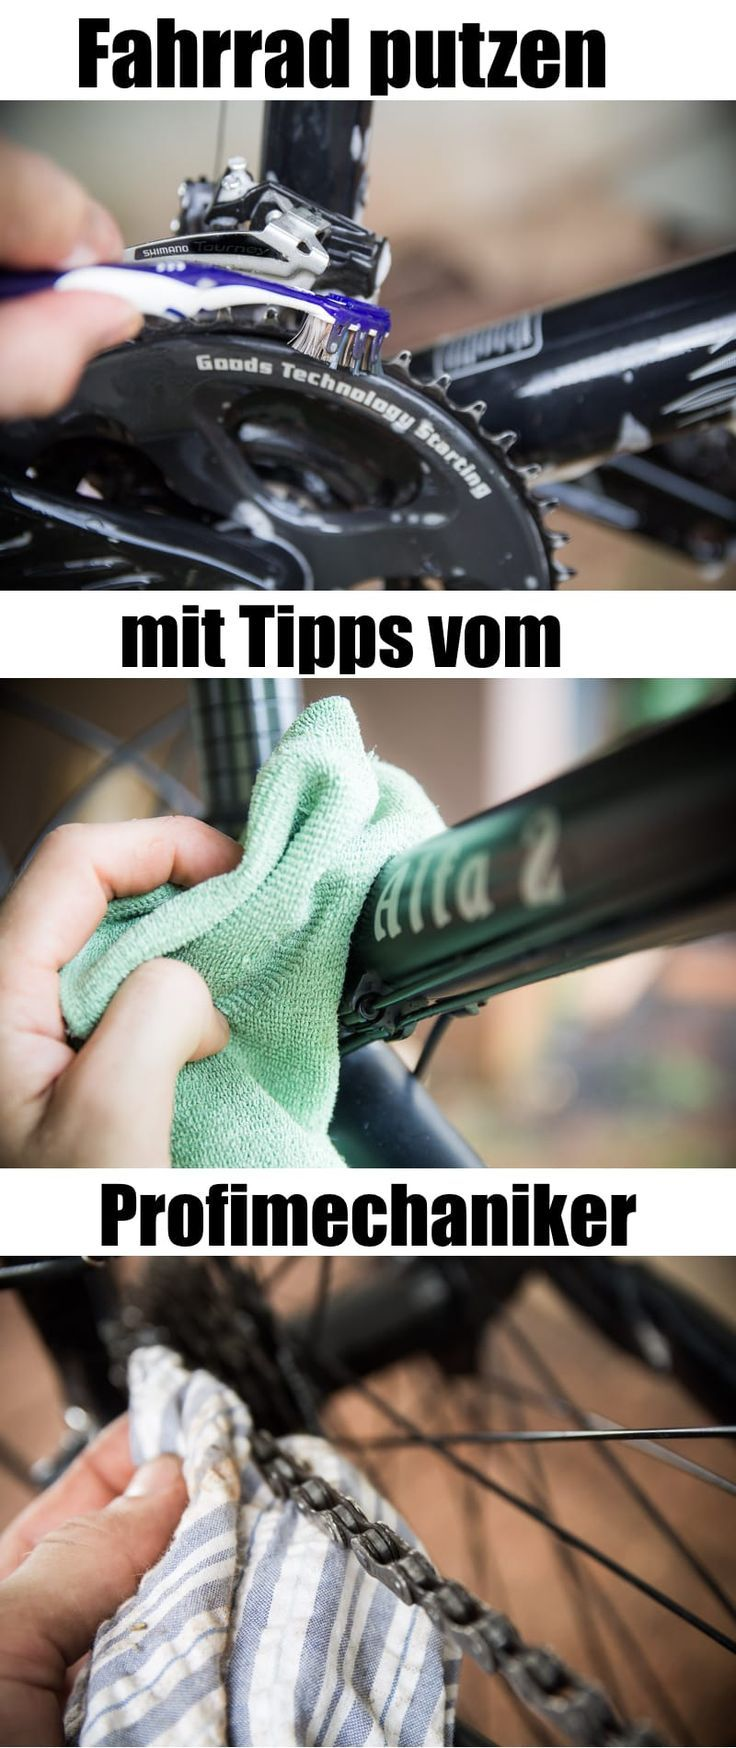 Cleaning the bike: That's what the pros do